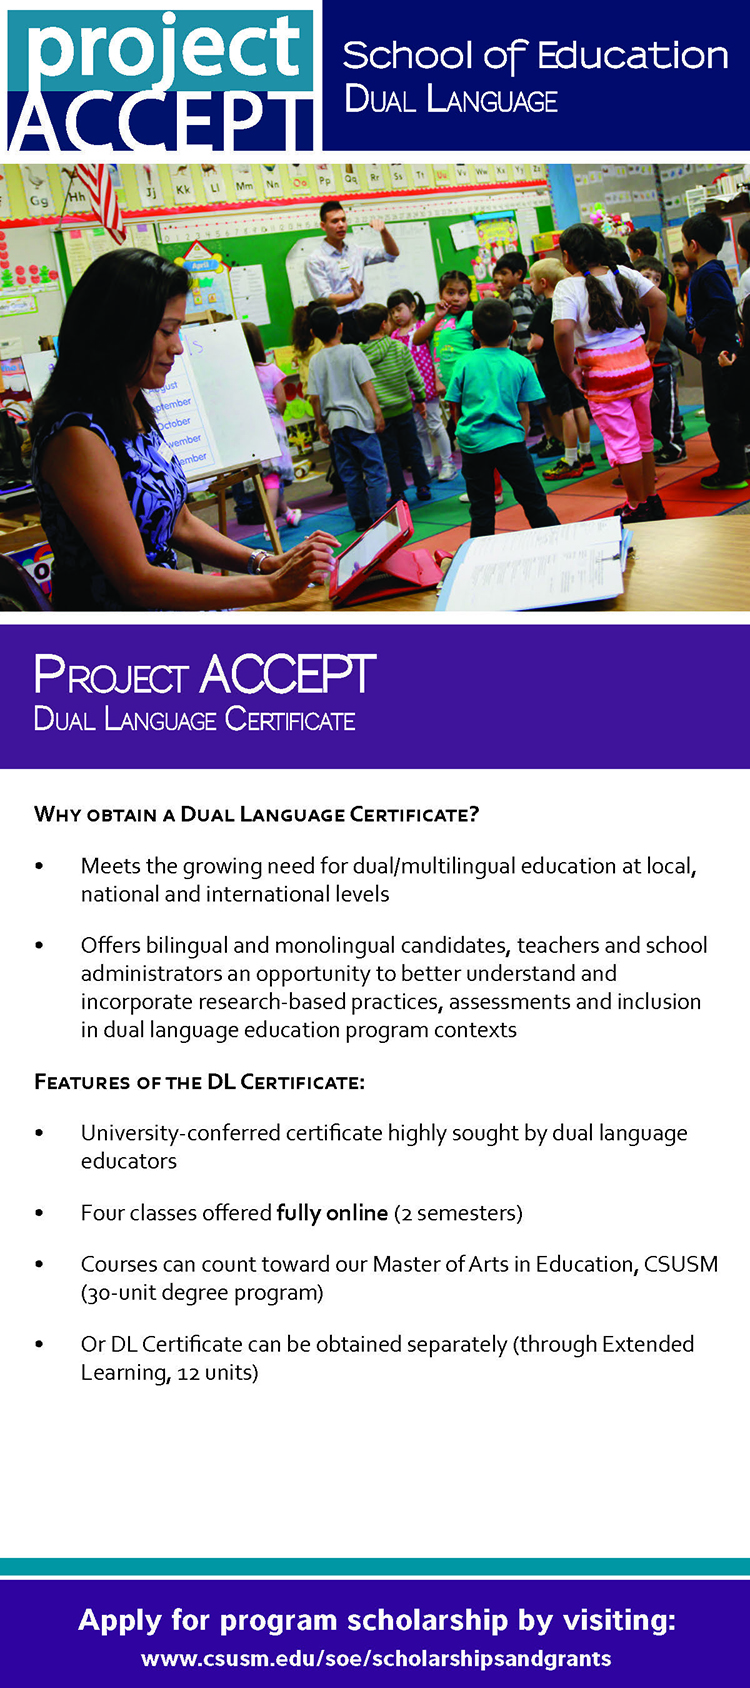 ProjectACCEPT Dual Language Flyer